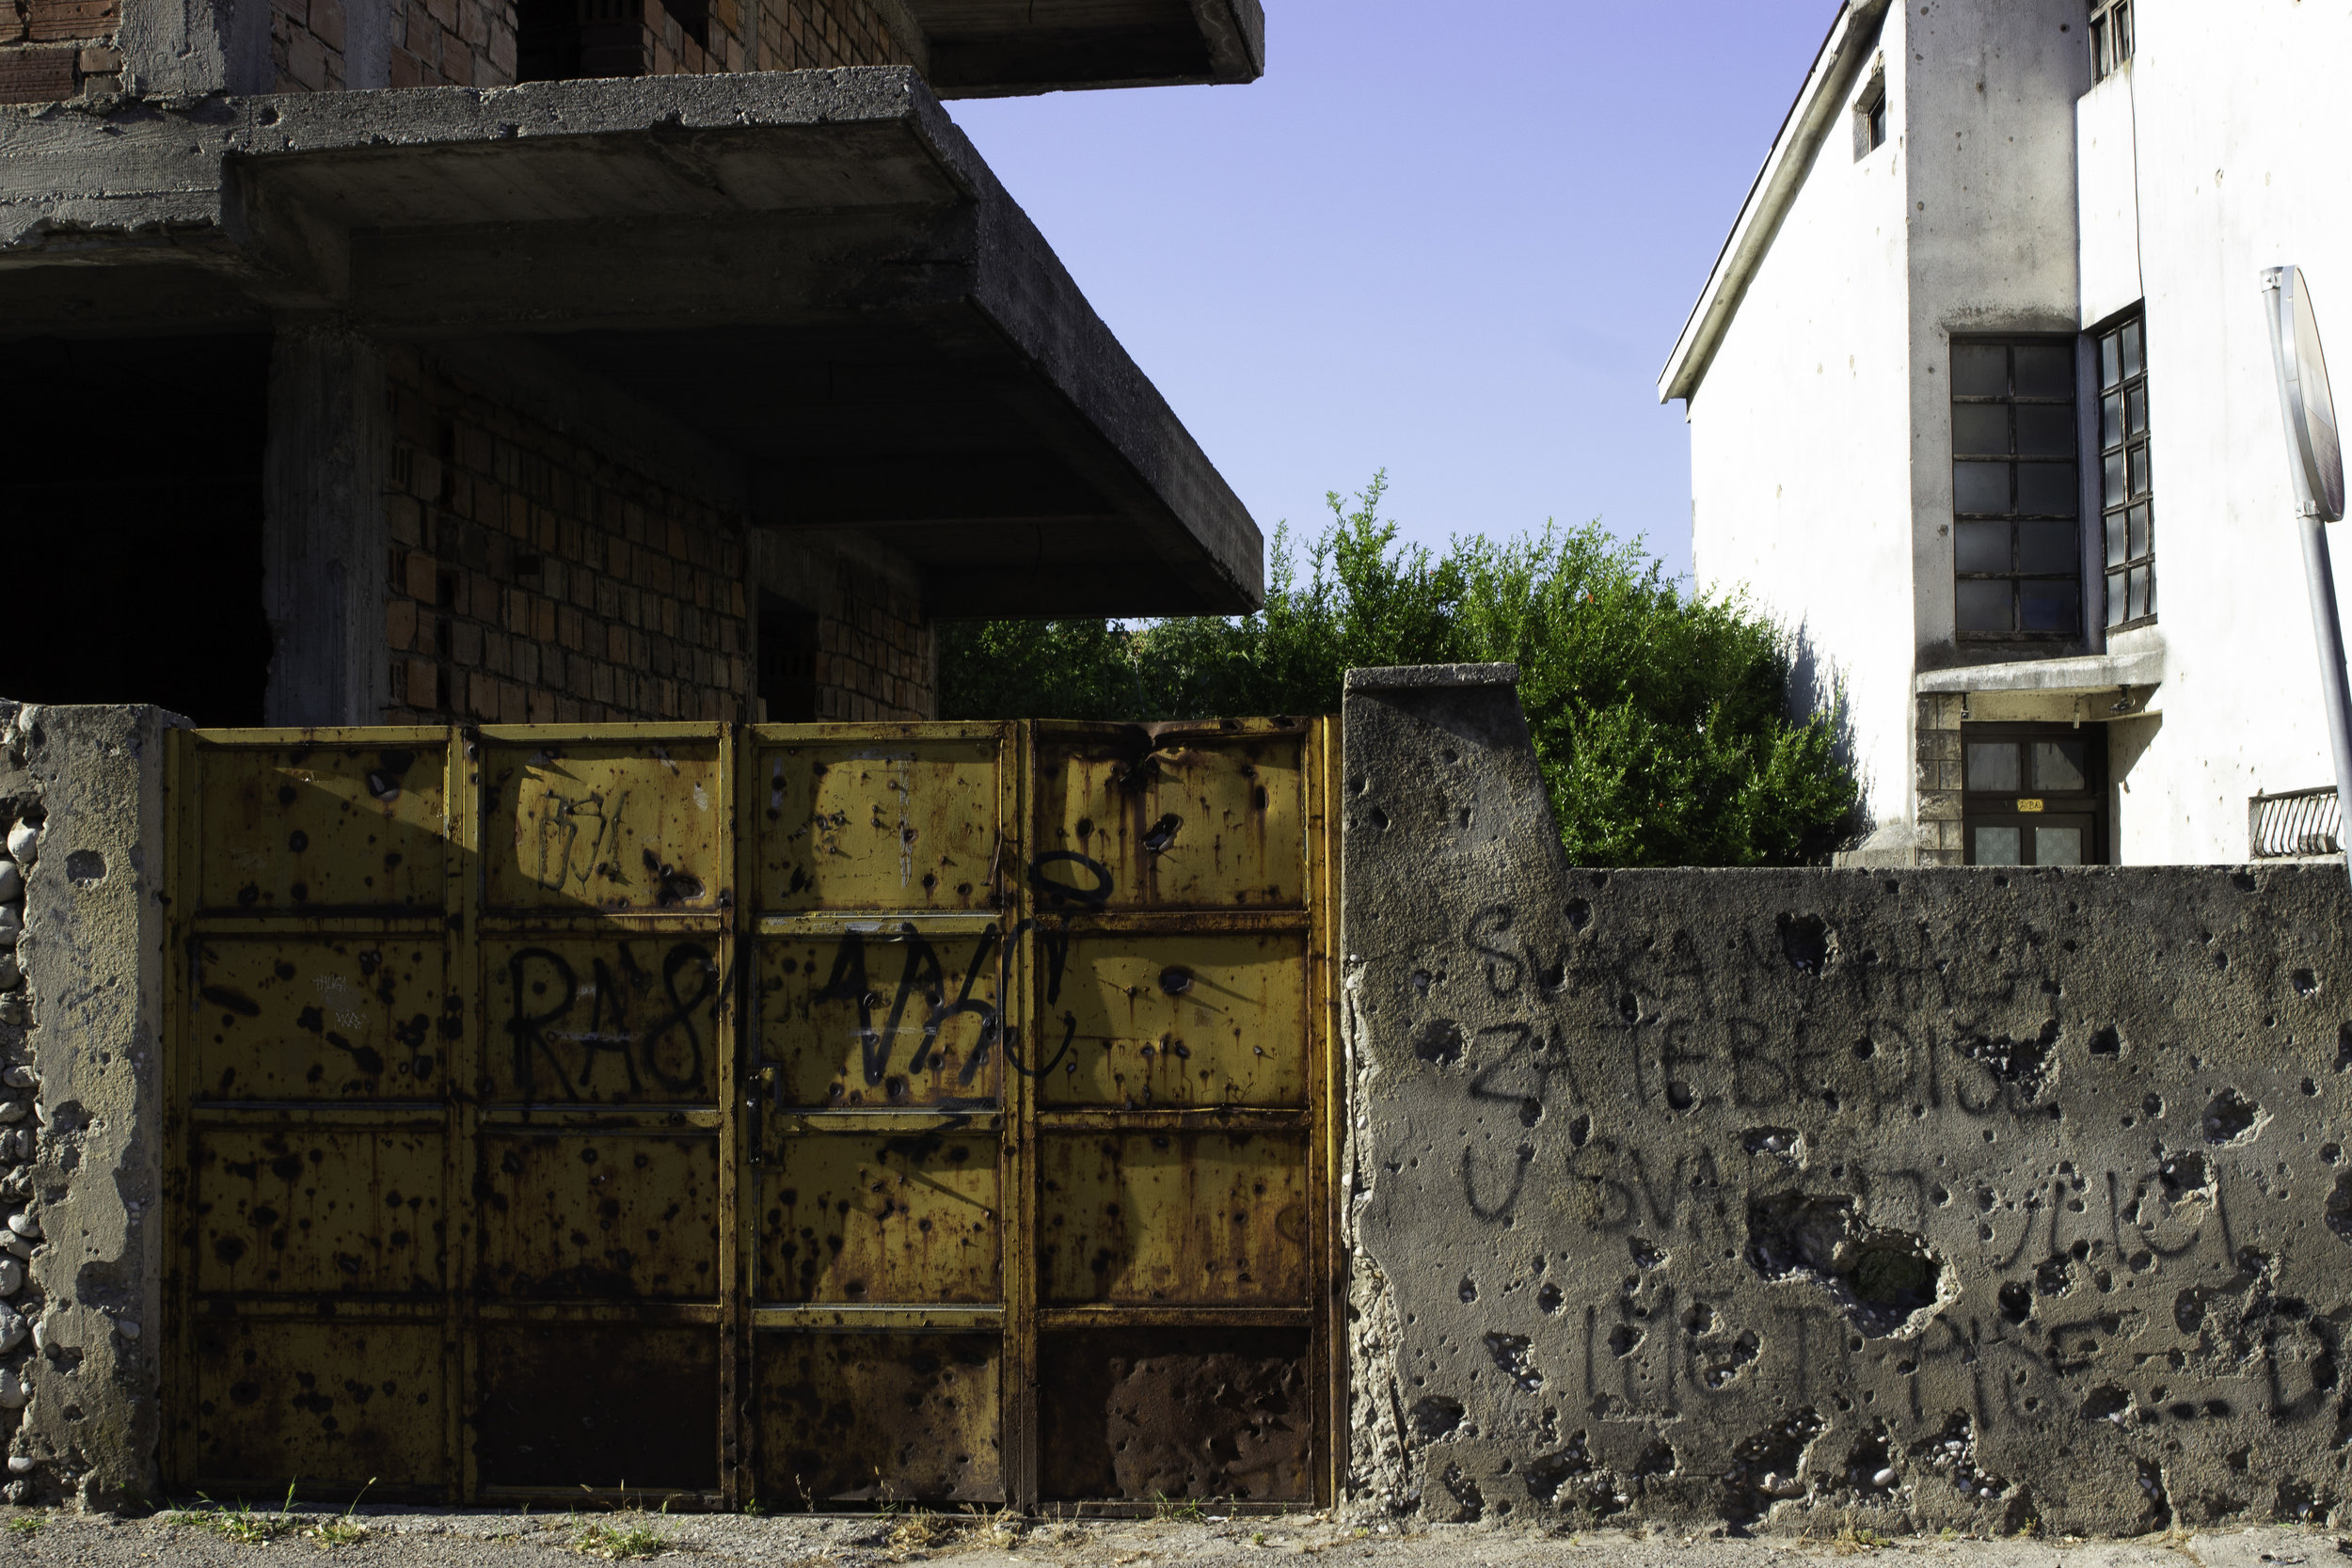 Located just outside the old town, this shelled property still wears scars from the war.